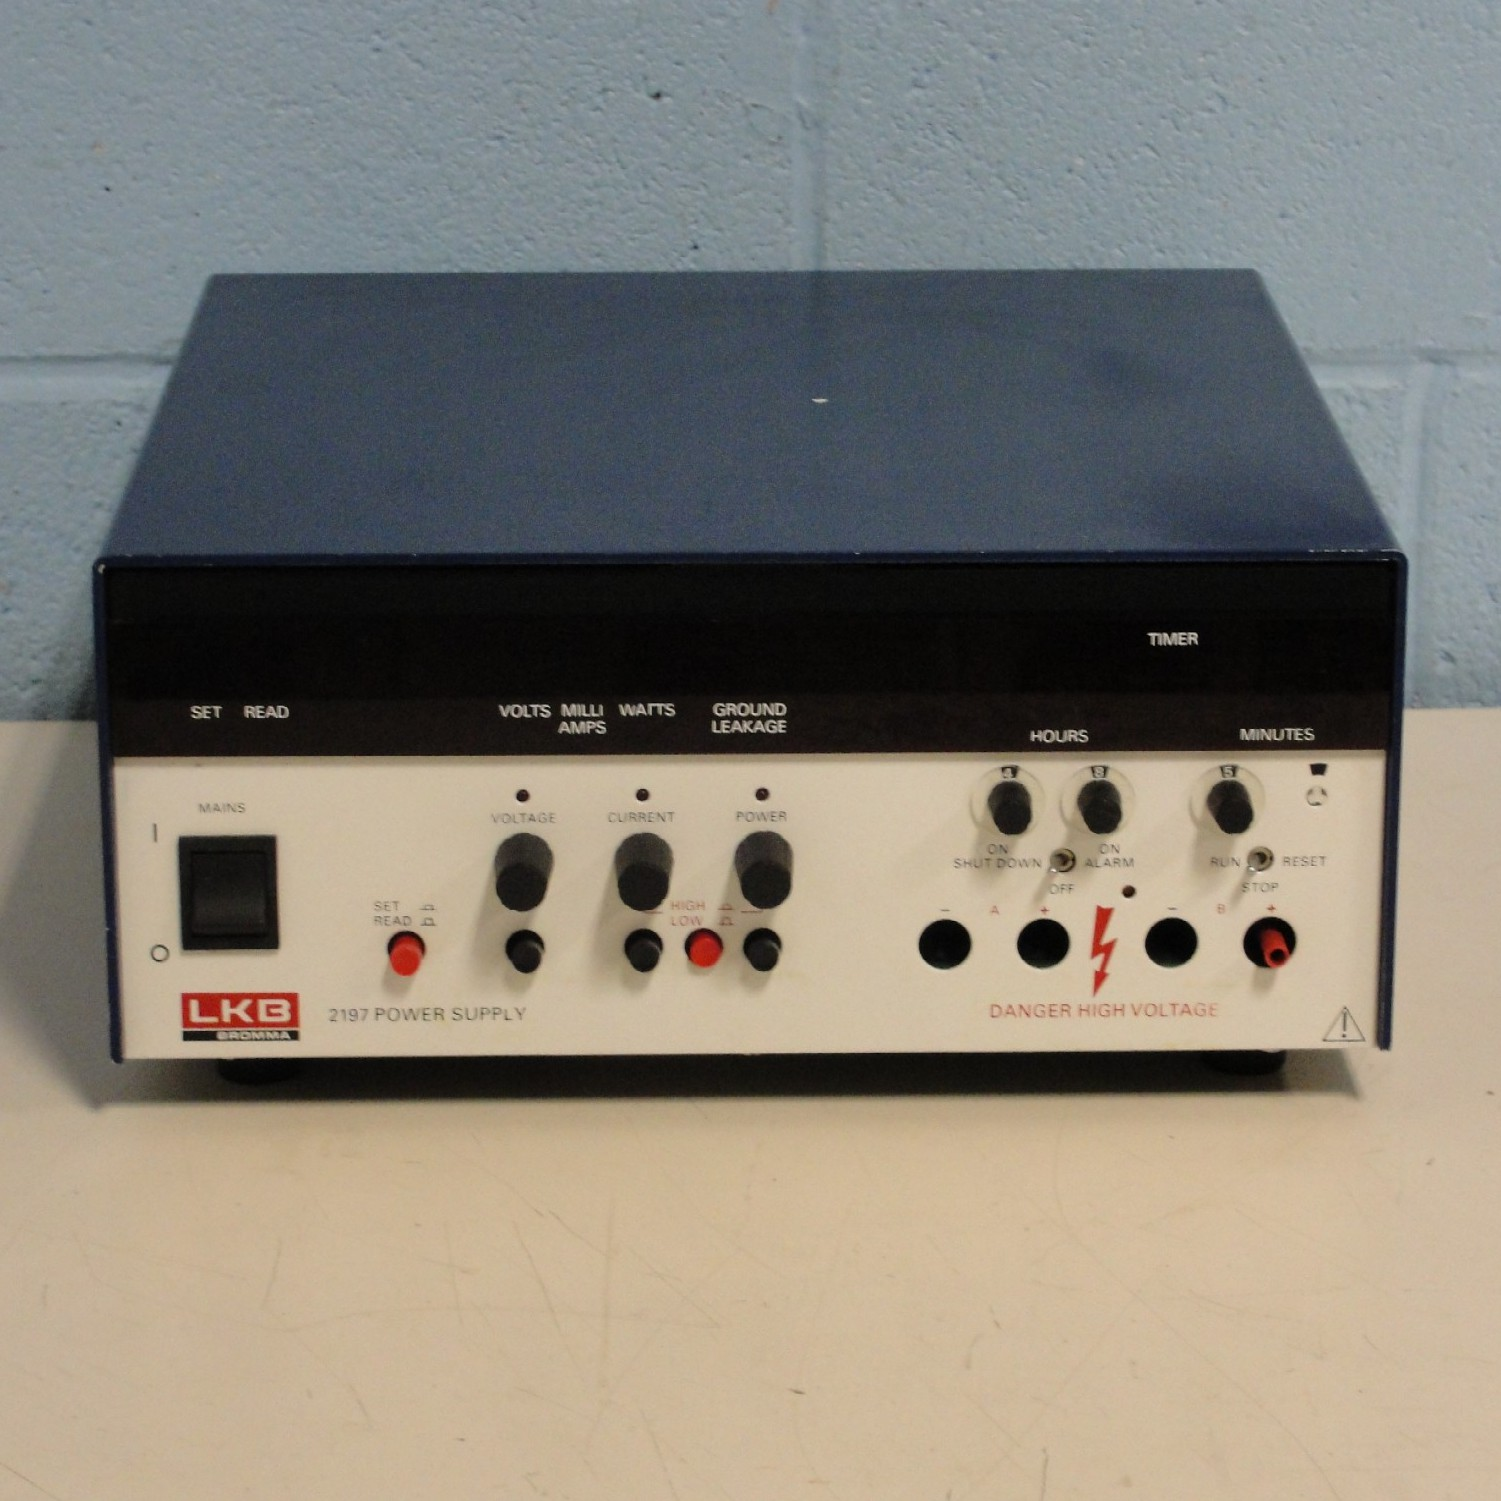 2197 Power Supply Name